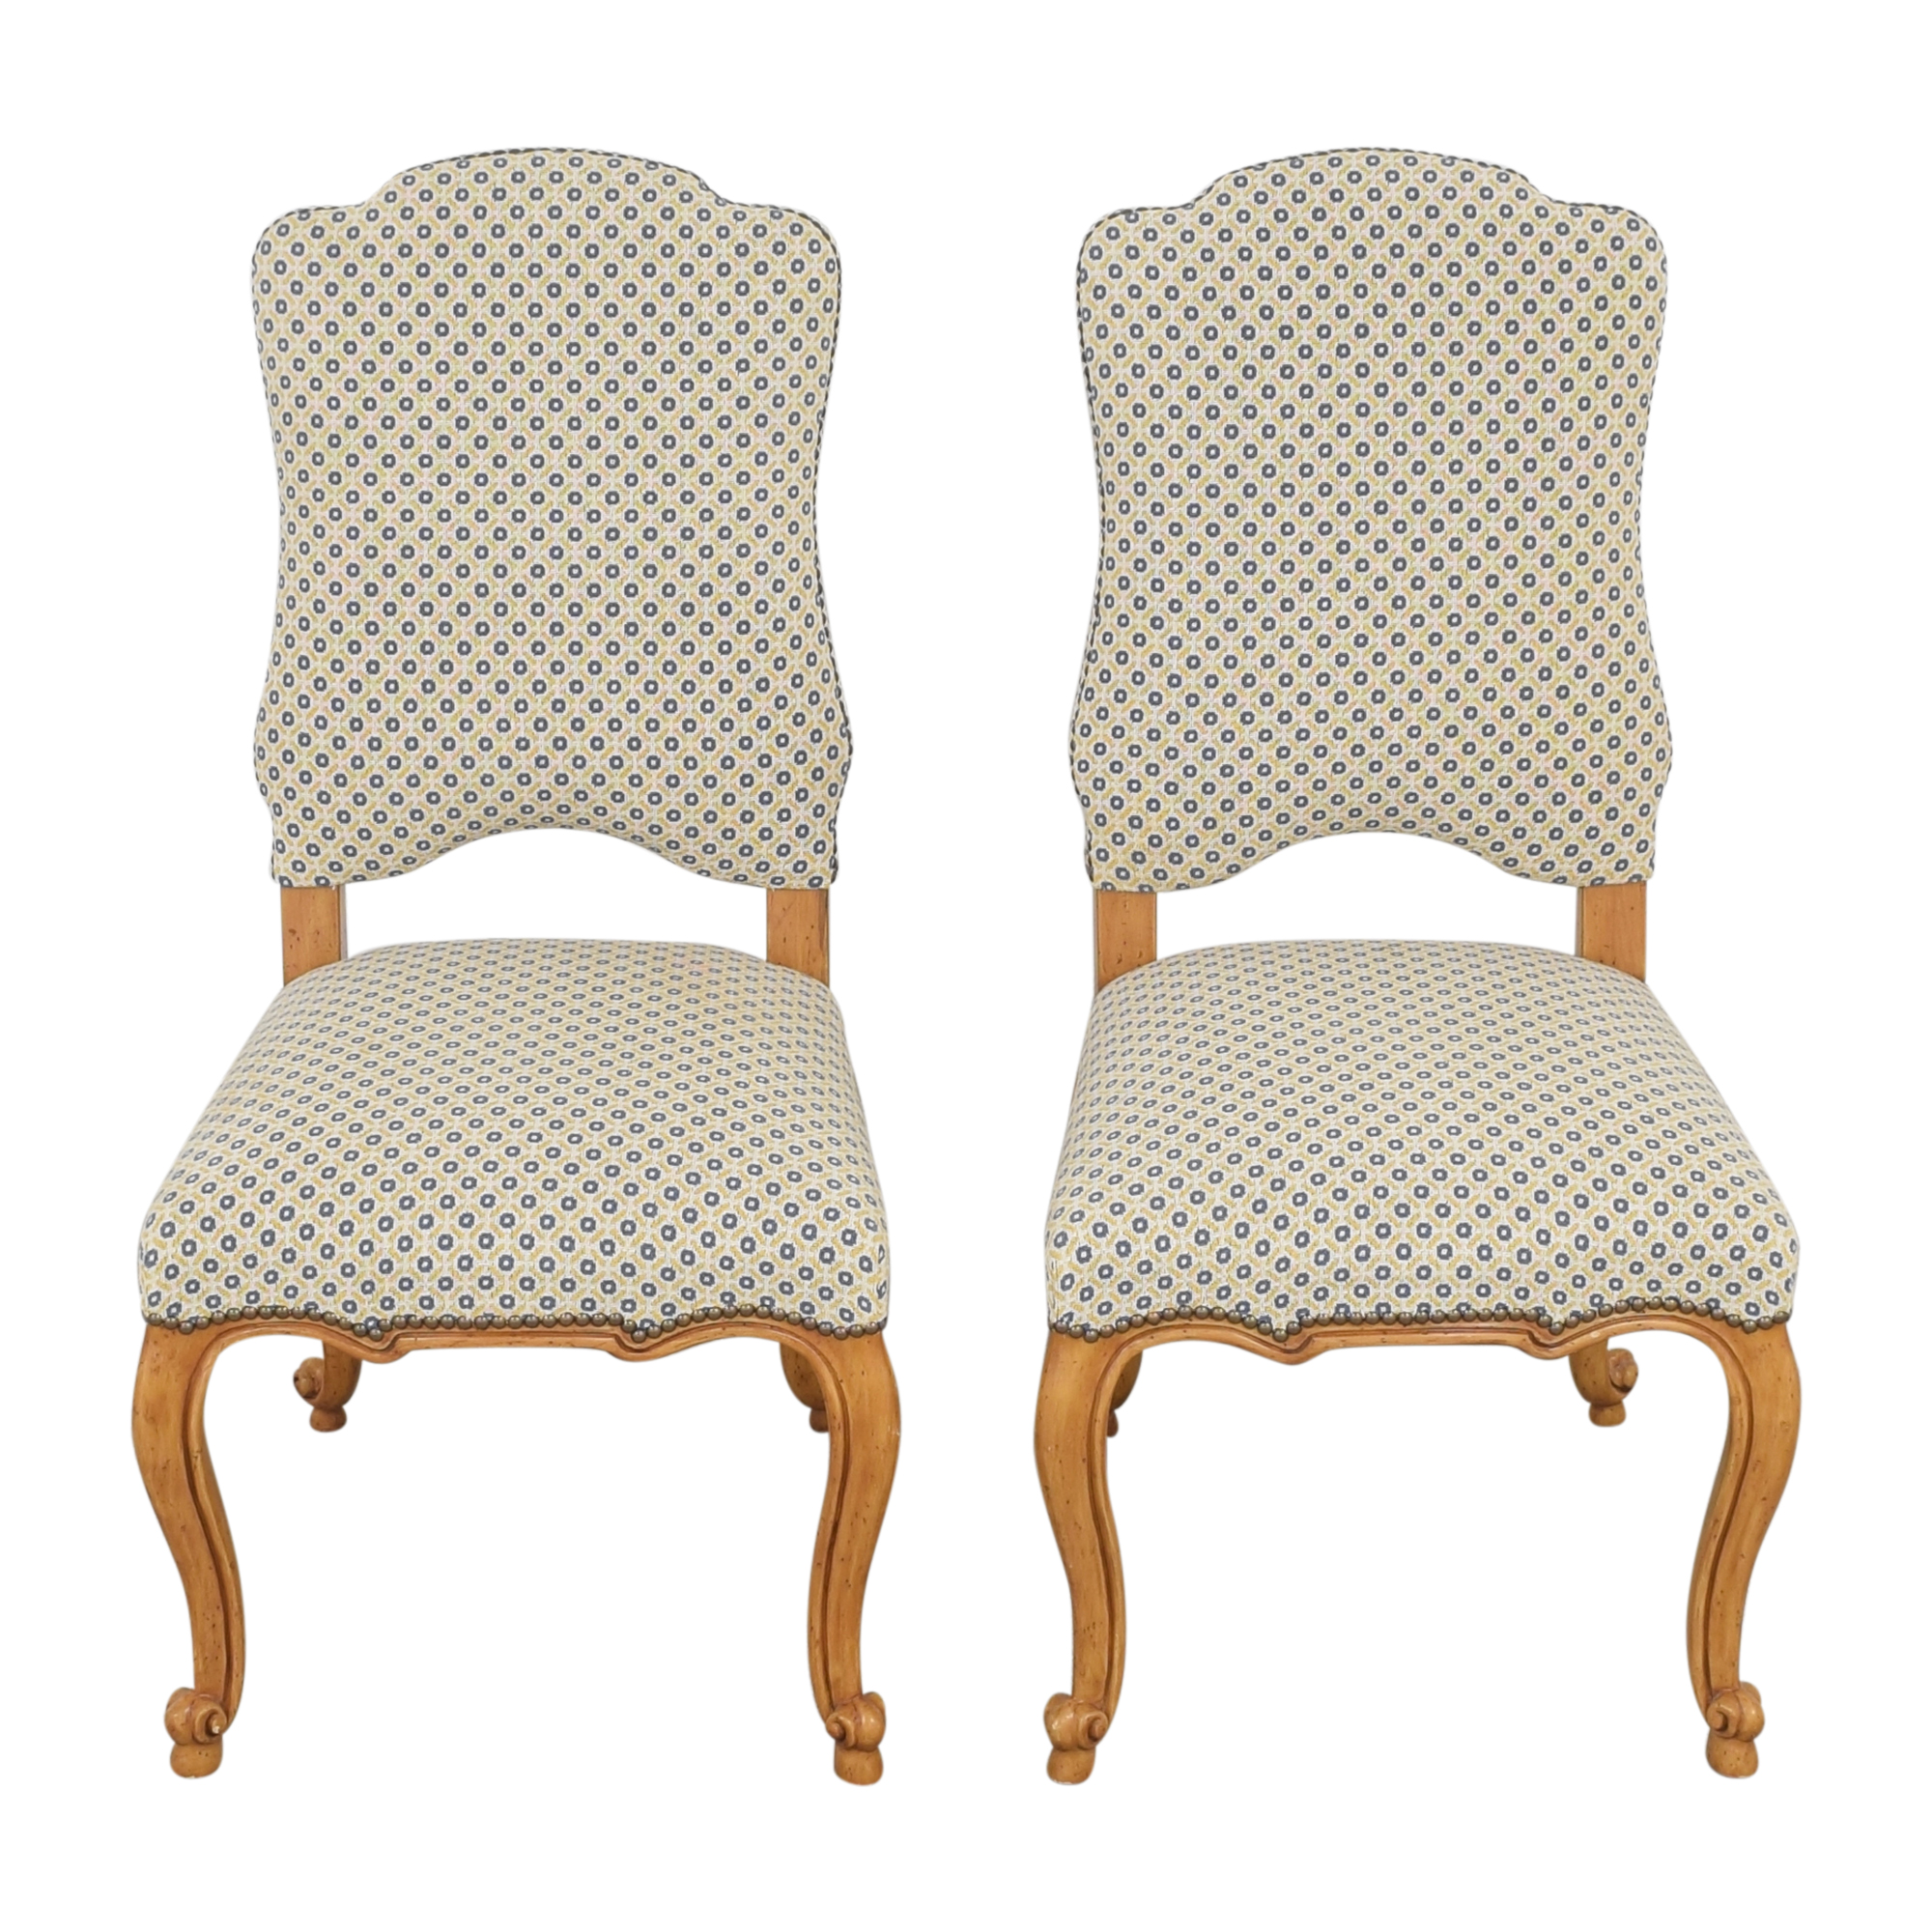 Minton-Spidell Regence Dining Side Chairs / Dining Chairs